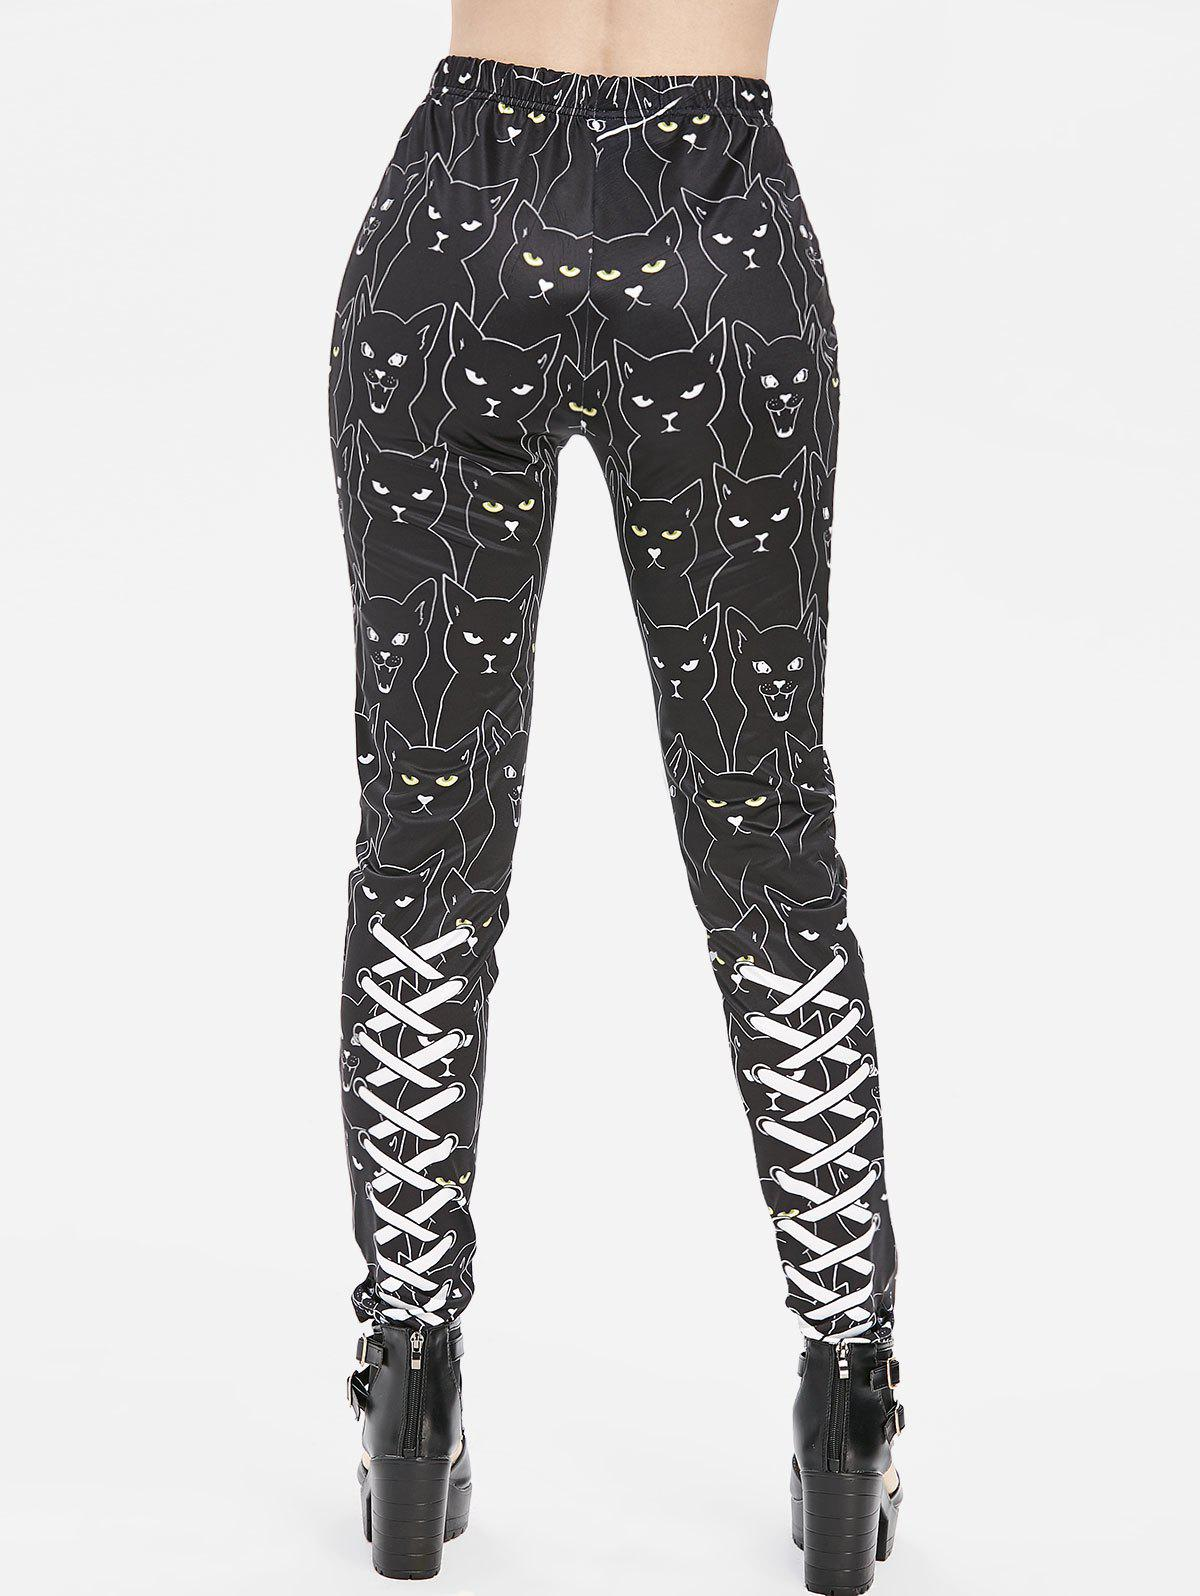 3D Lace Up Cat Print High Waisted Skinny Pants - BLACK M